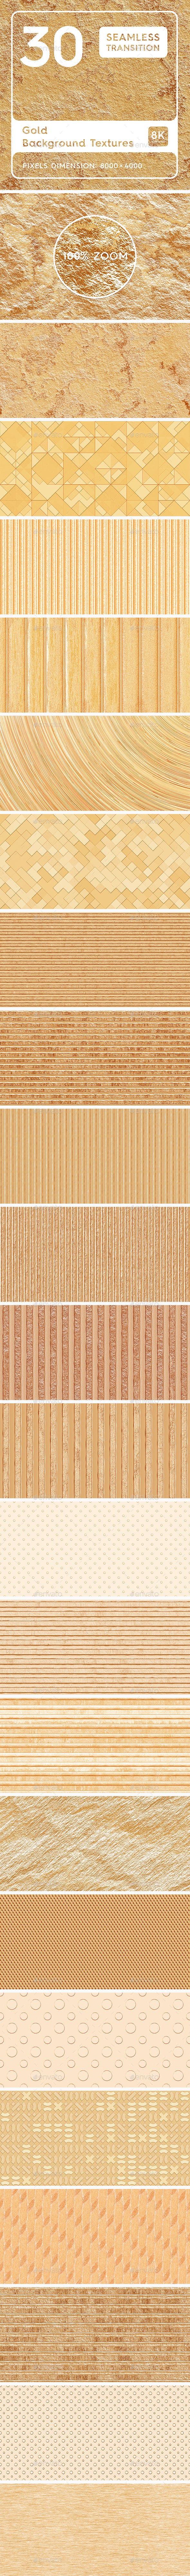 30 Gold Background Textures. Seamless Transition. - 3DOcean Item for Sale